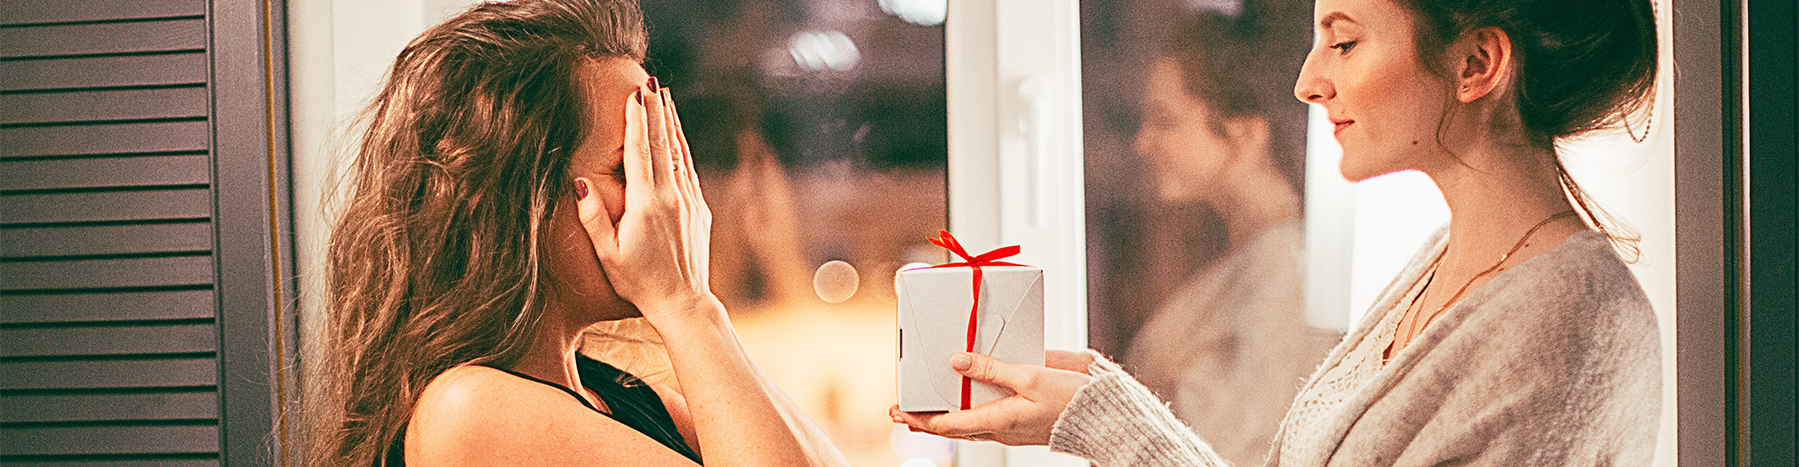 Bridesmaid proposal-woman giving present to another woman